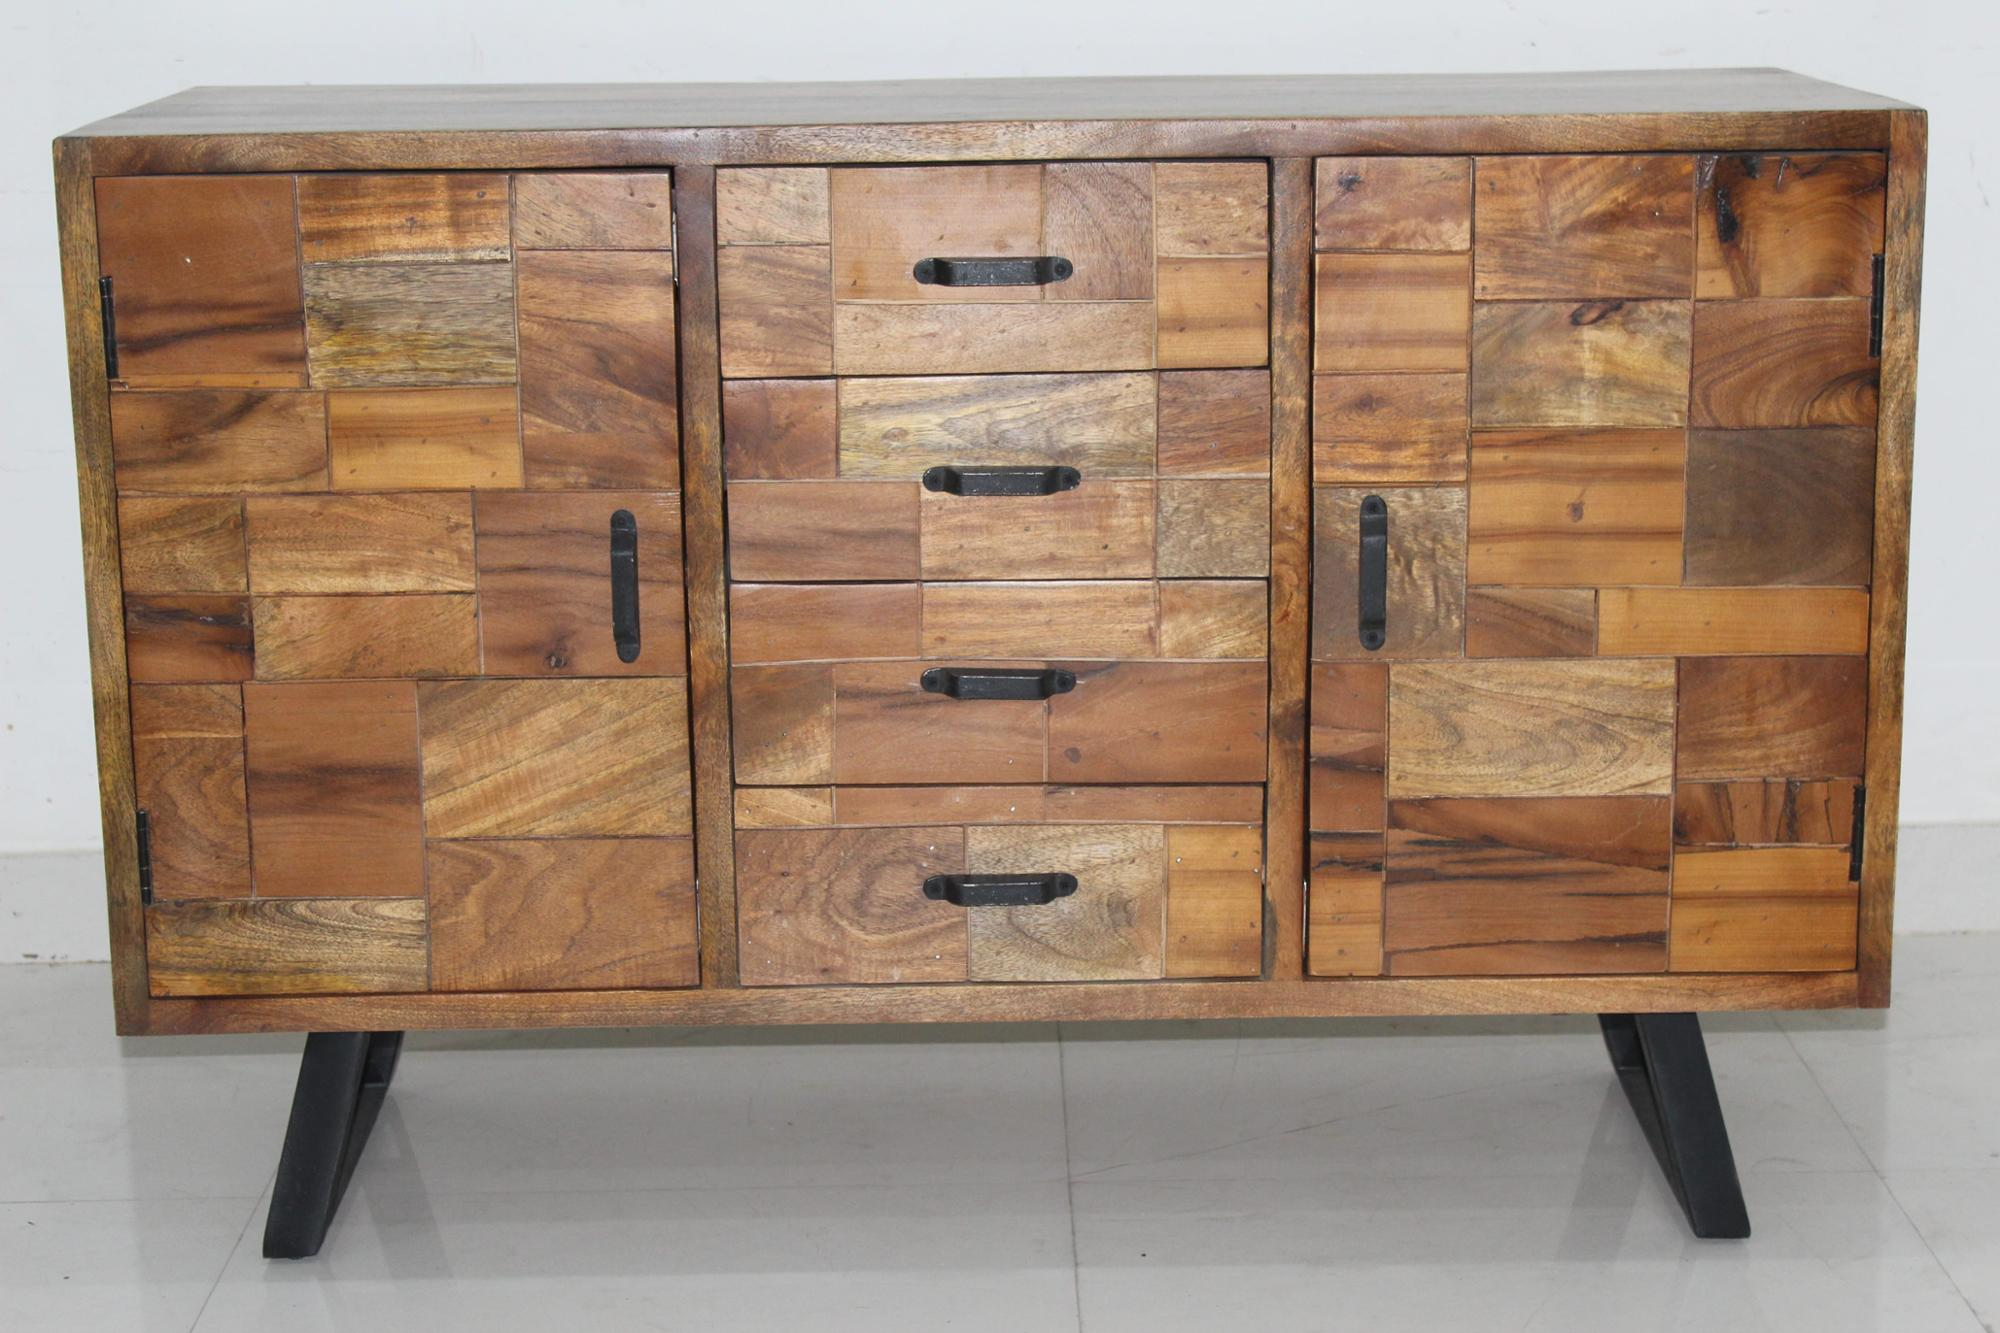 Sideboard Modern Modern Furniture Sideboard Design With Matt Black Metal Base Industrial Mango Wood 2 Drawers 4 Door Sideboard With Iron Legs - Buy Sideboard Living Room Furniture,industrial Modern Sideboard,mango Wood 2 Drawers 4